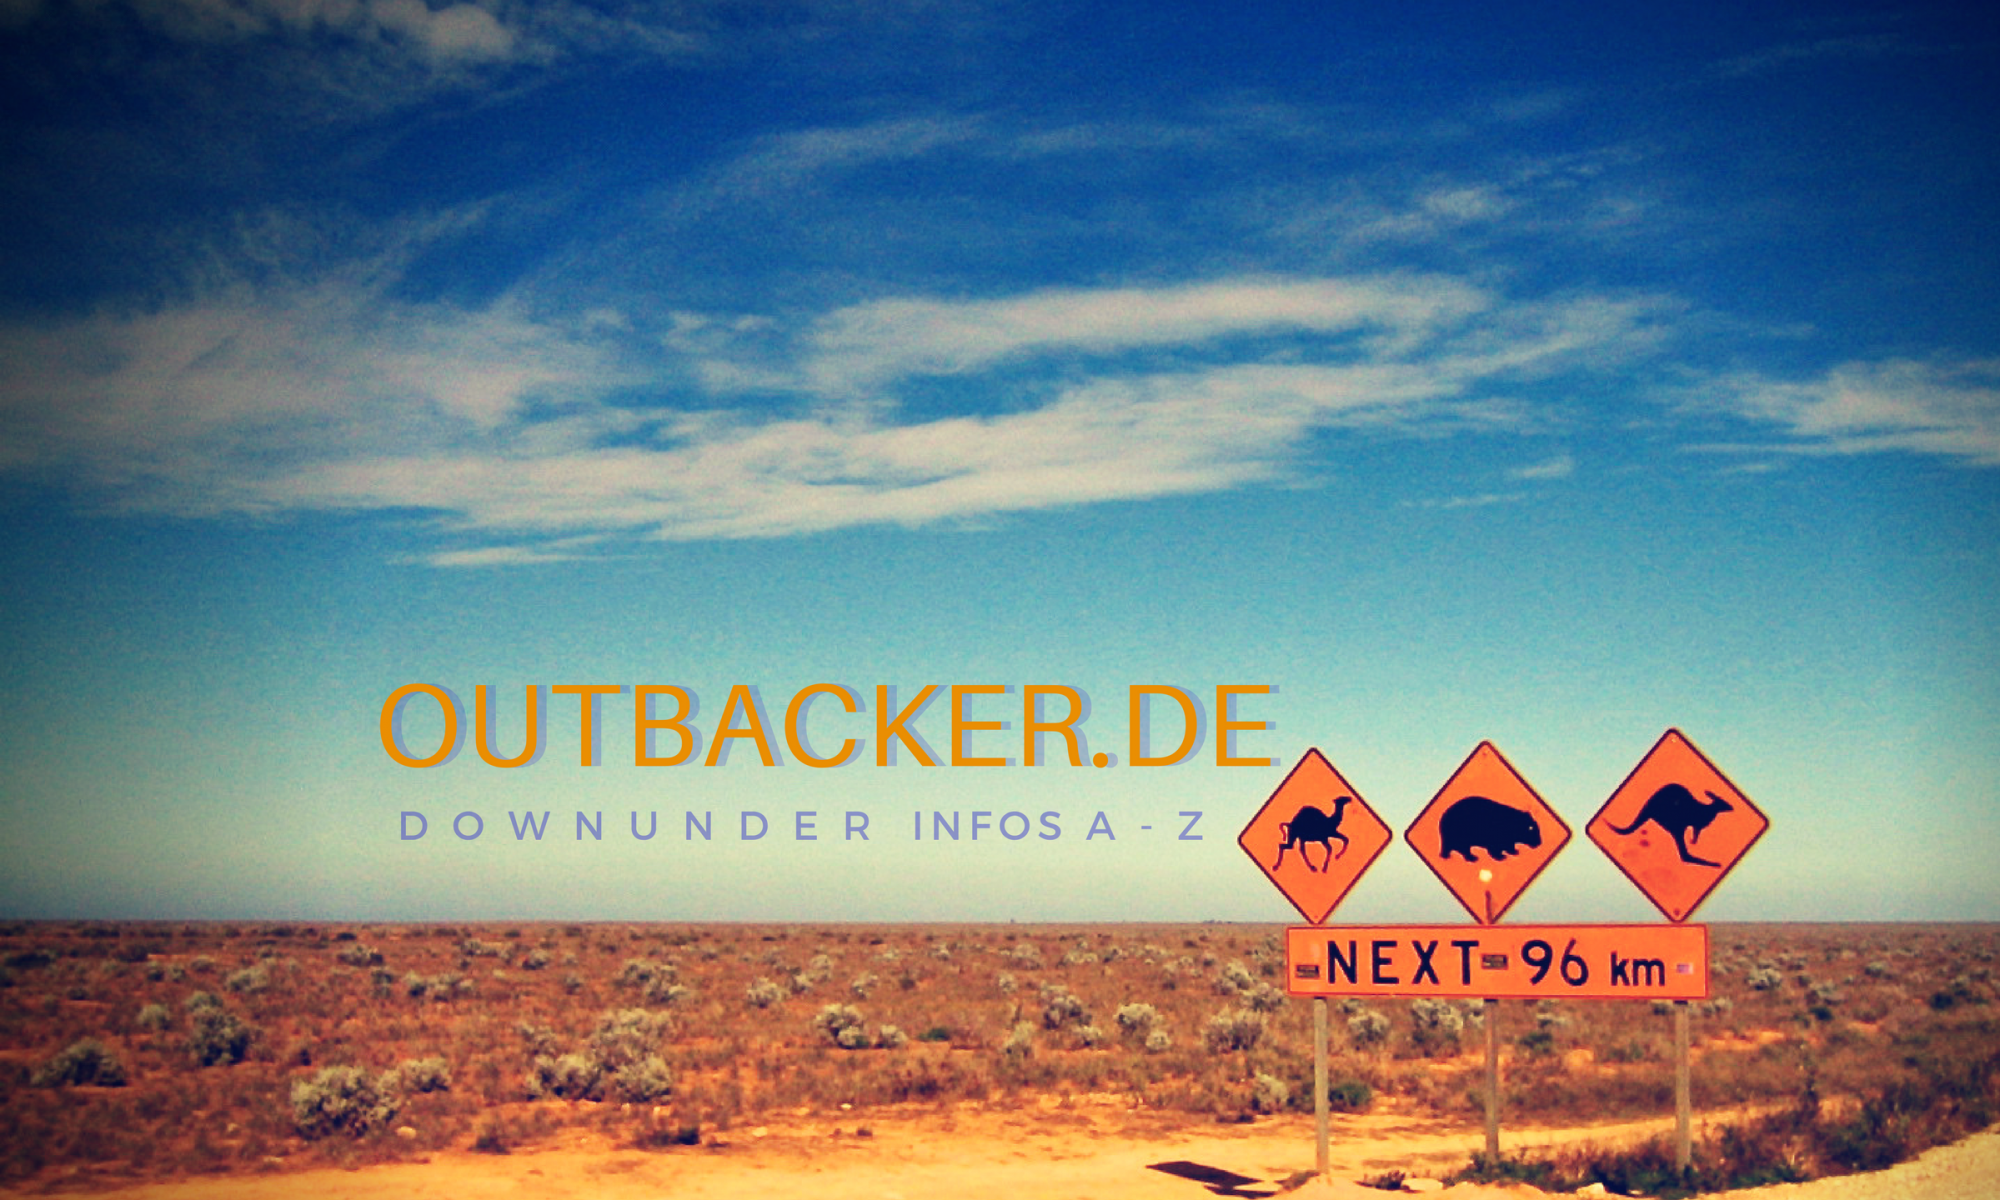 OUTBACKER DownUnder Infos A-Z